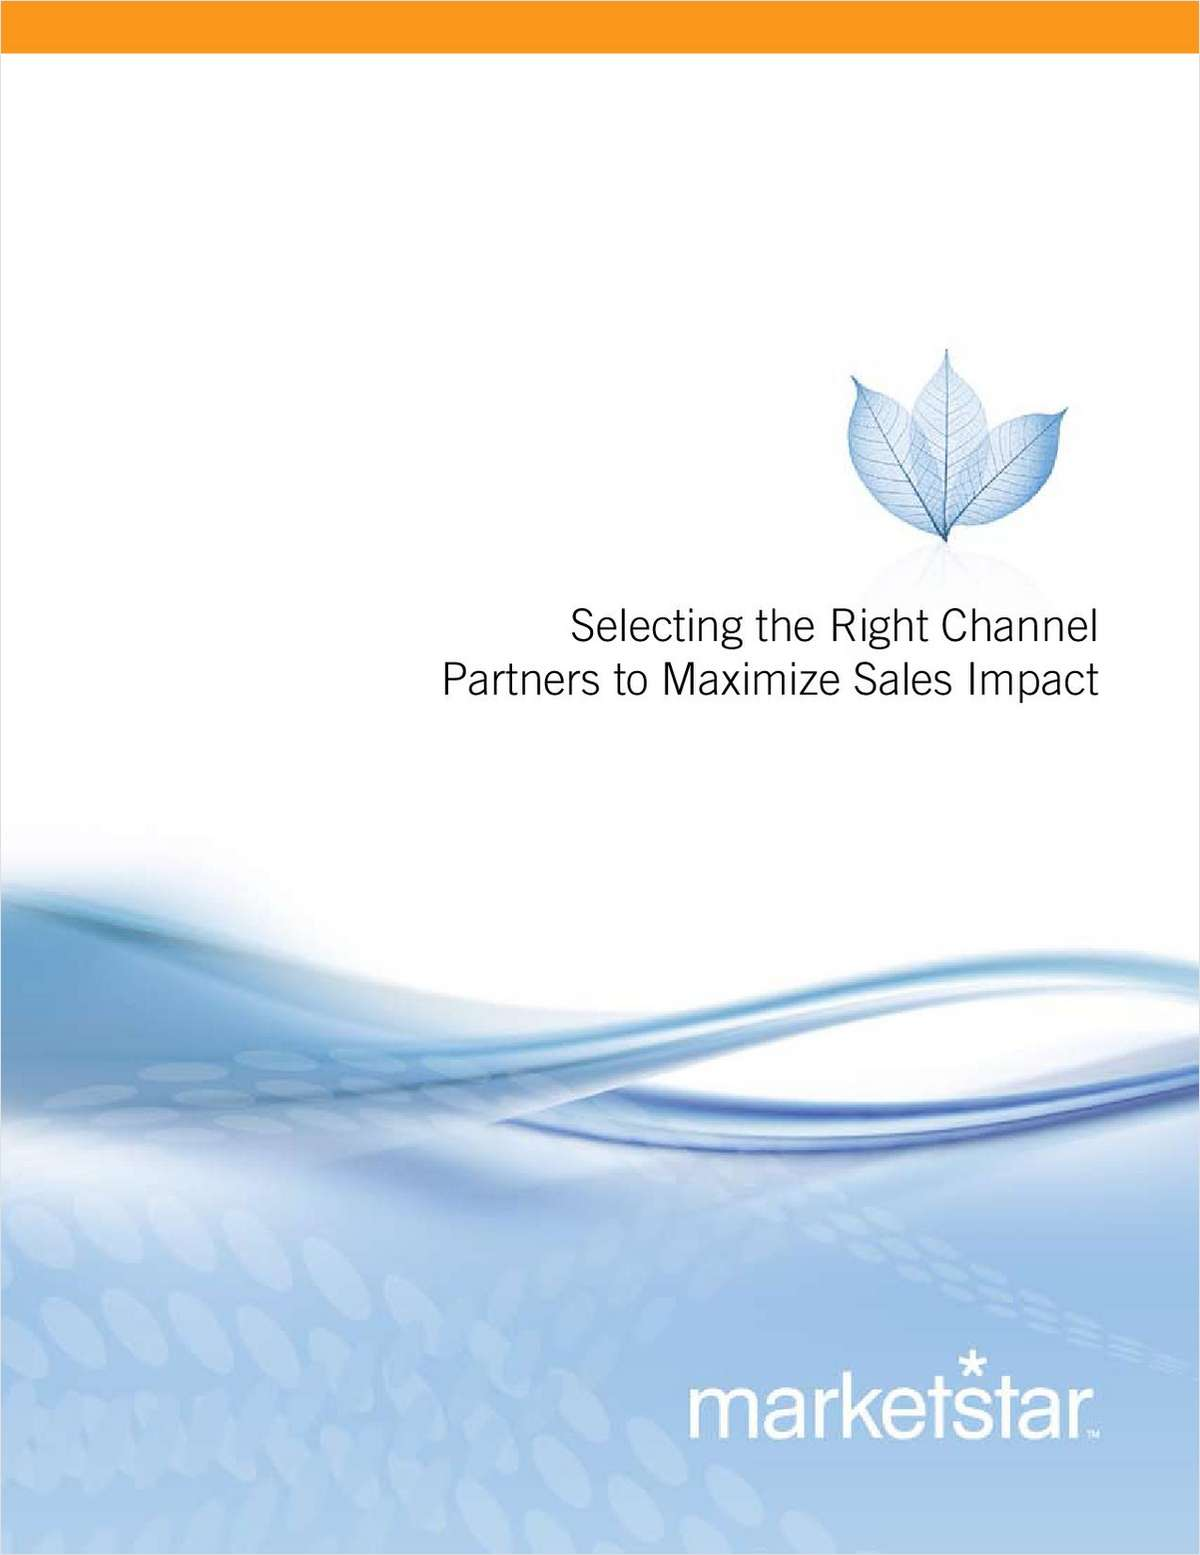 Selecting the Right Channel Partners to Maximize Sales Impact